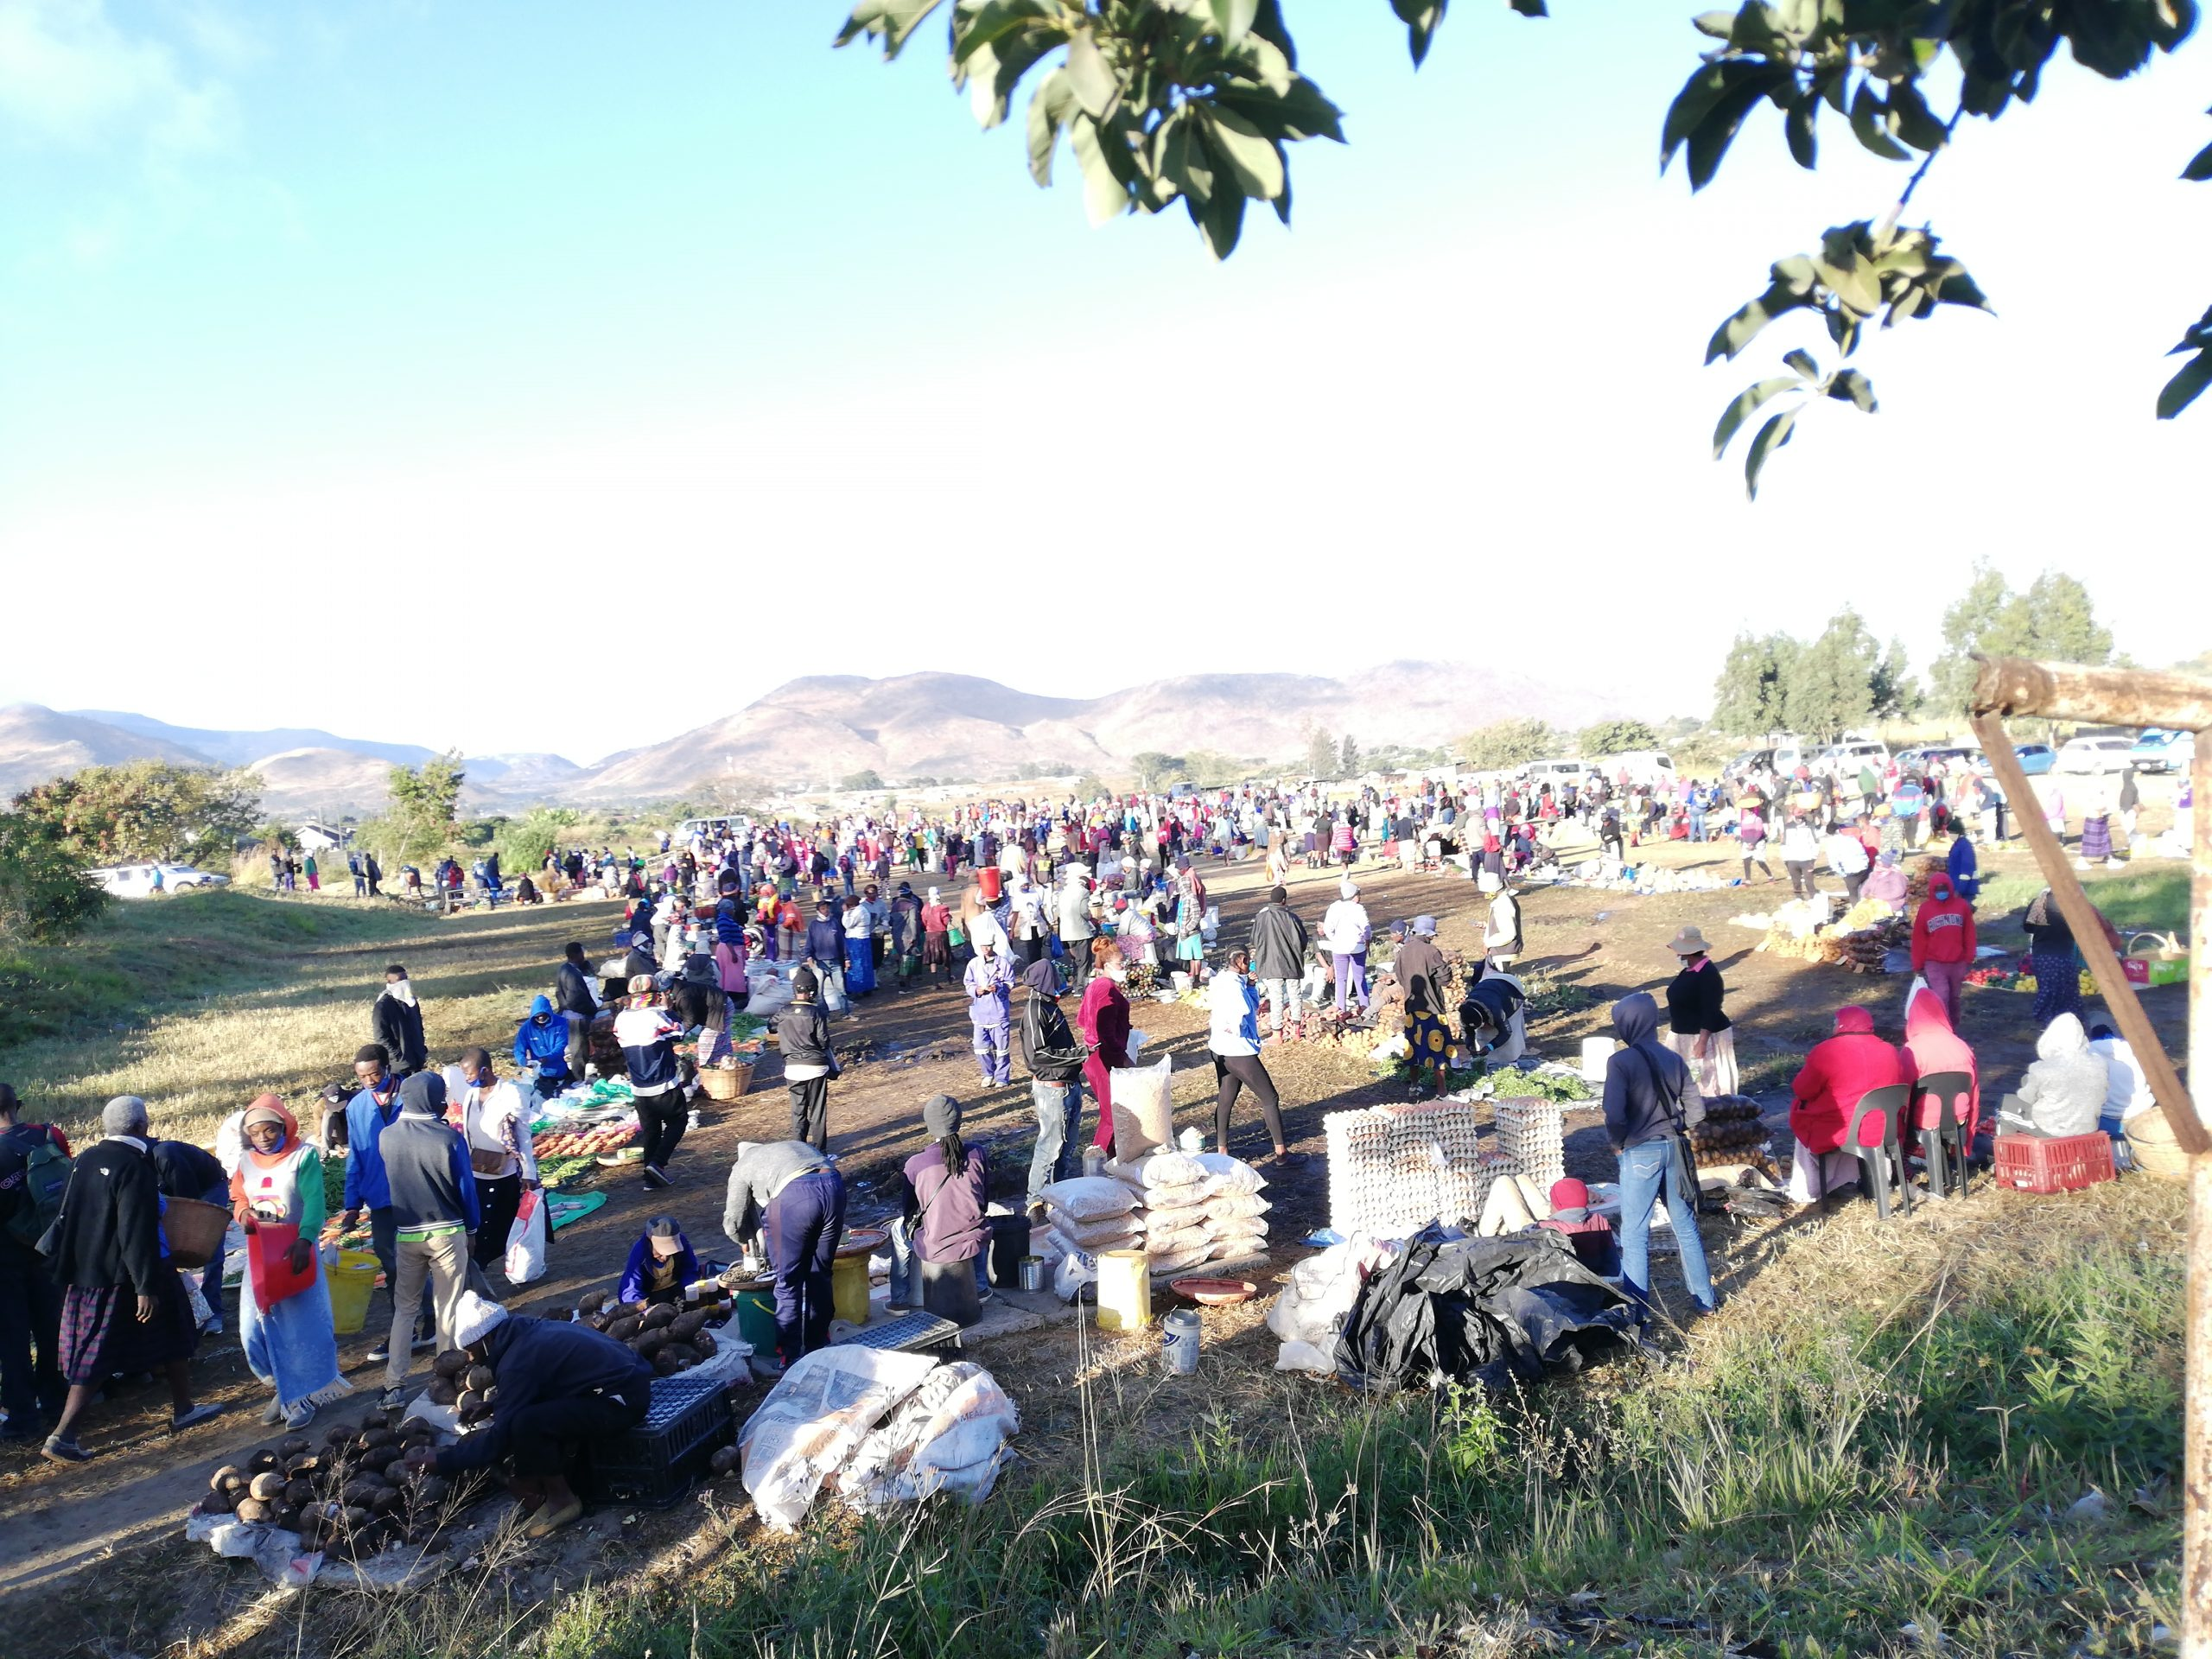 Some-citizens-shun-visiting-fresh-produce-markets-in-Zimbabwe-as-they-are-overcrowded-and-social-distancing-is-often-not-observed-in-the-wake-of-Coronavirus-Farai-Shawn-MatiasheZenger-News-scaled-1